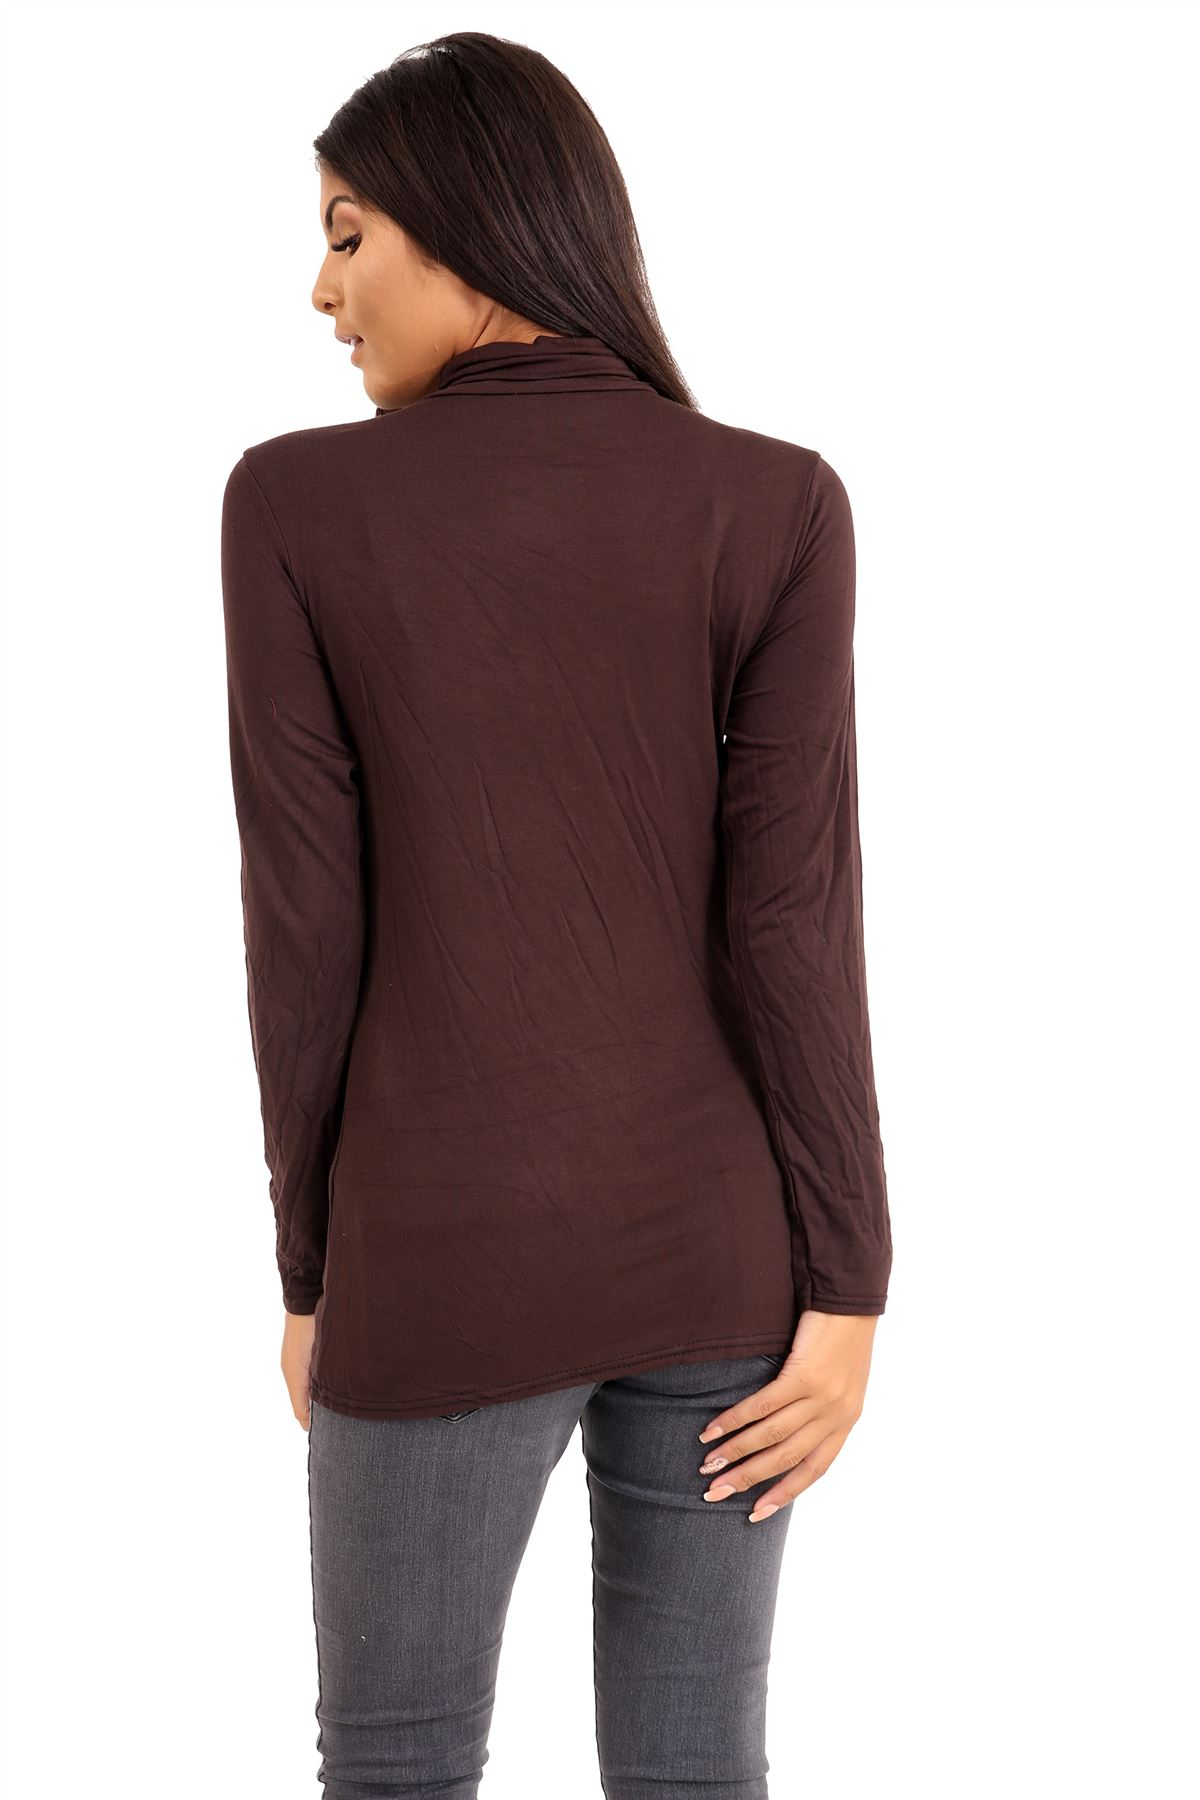 New-Ladies-Long-Sleeve-Plain-Turtle-Polo-Roll-Neck-Stretch-Jumper-T-Shirt-TeeTop thumbnail 32